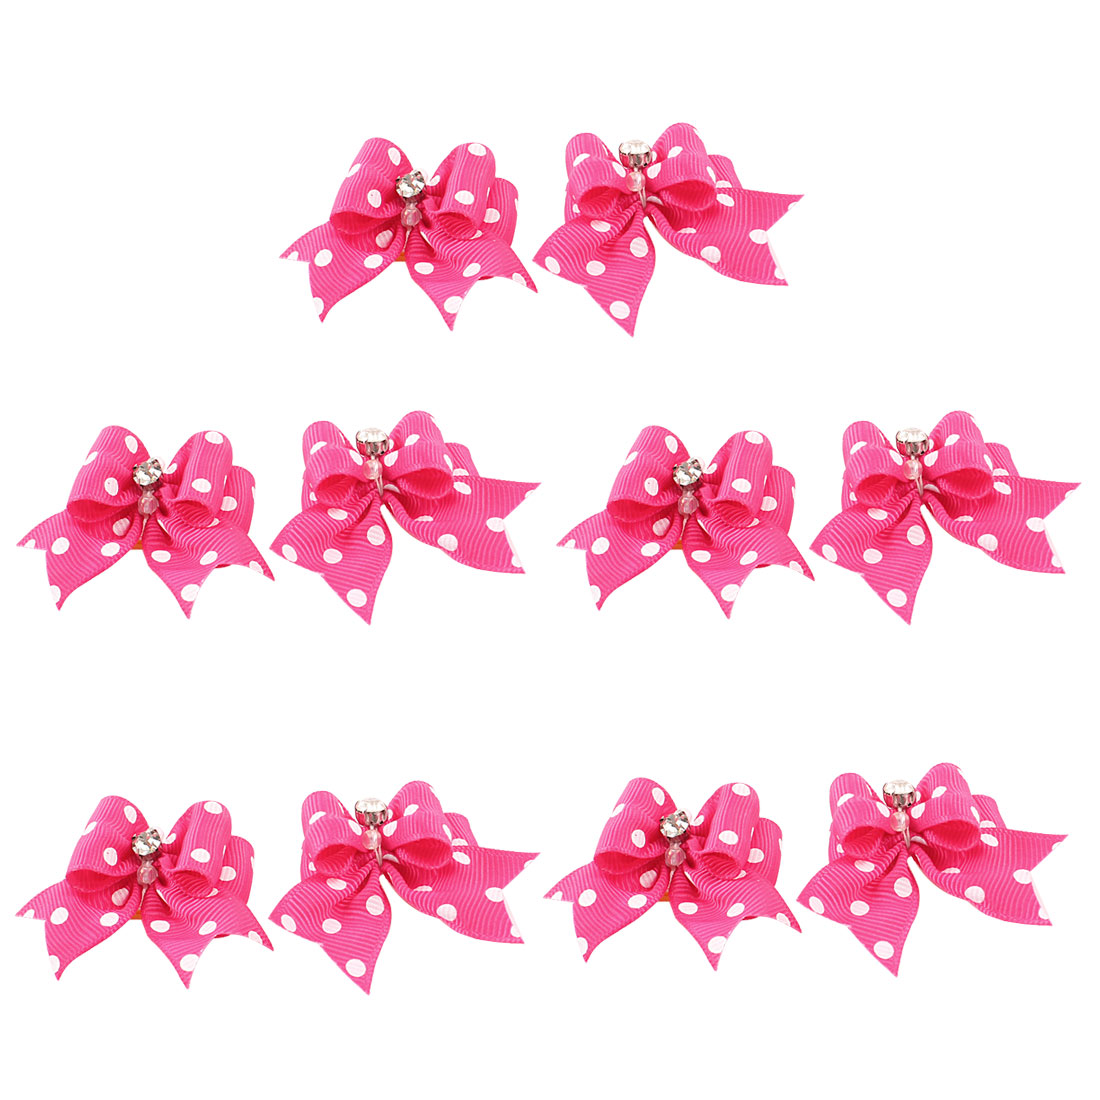 10 Pcs Rhinestone Accent Dot Print Pet Dog Puppy Elastic Hair Band Fuchsia